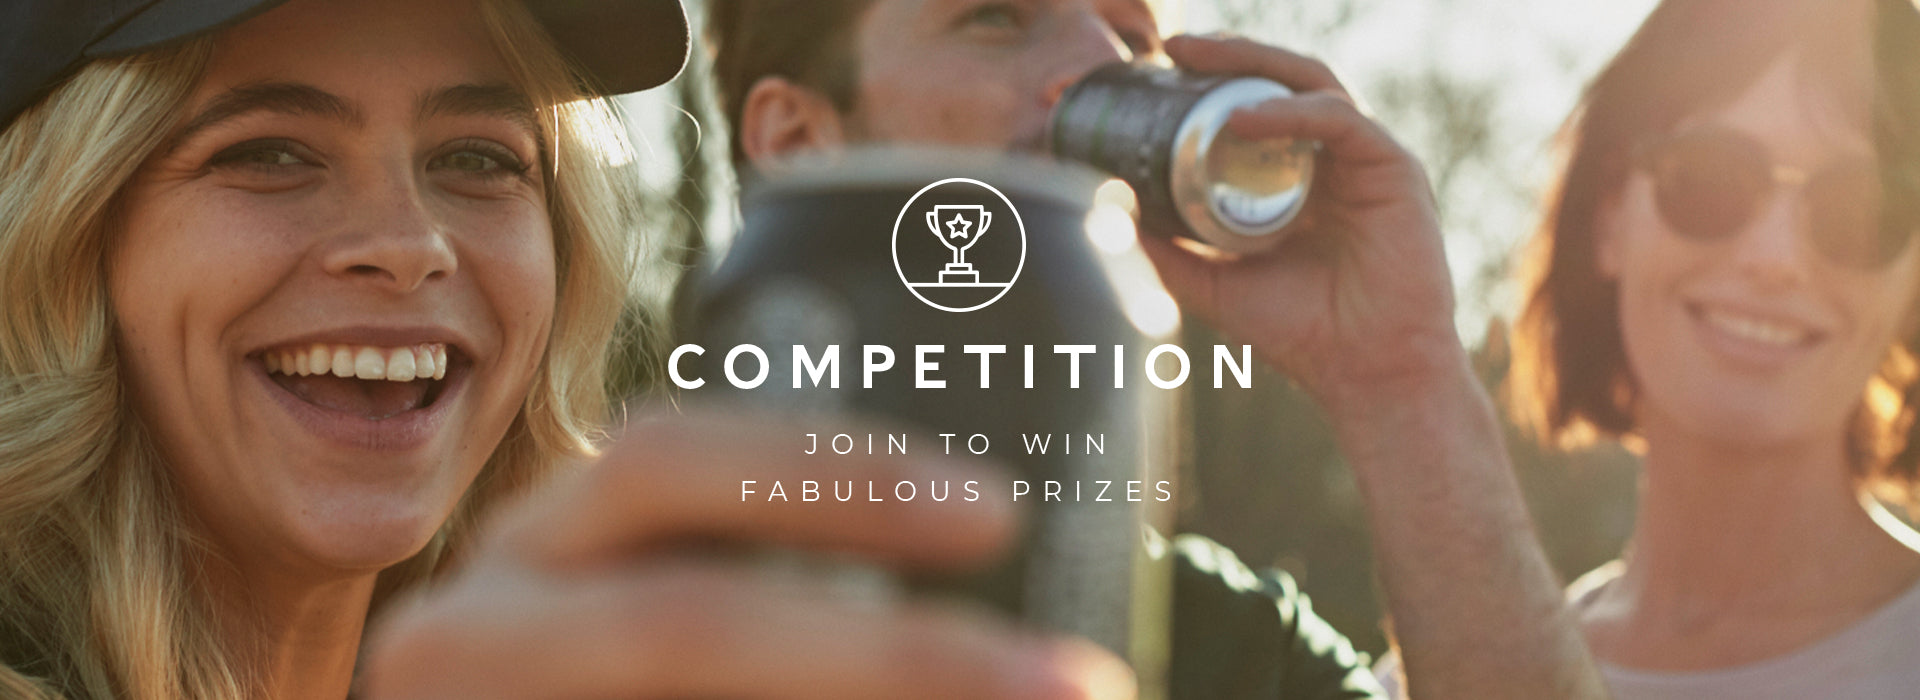 Competition. Join to win fabulous prizes